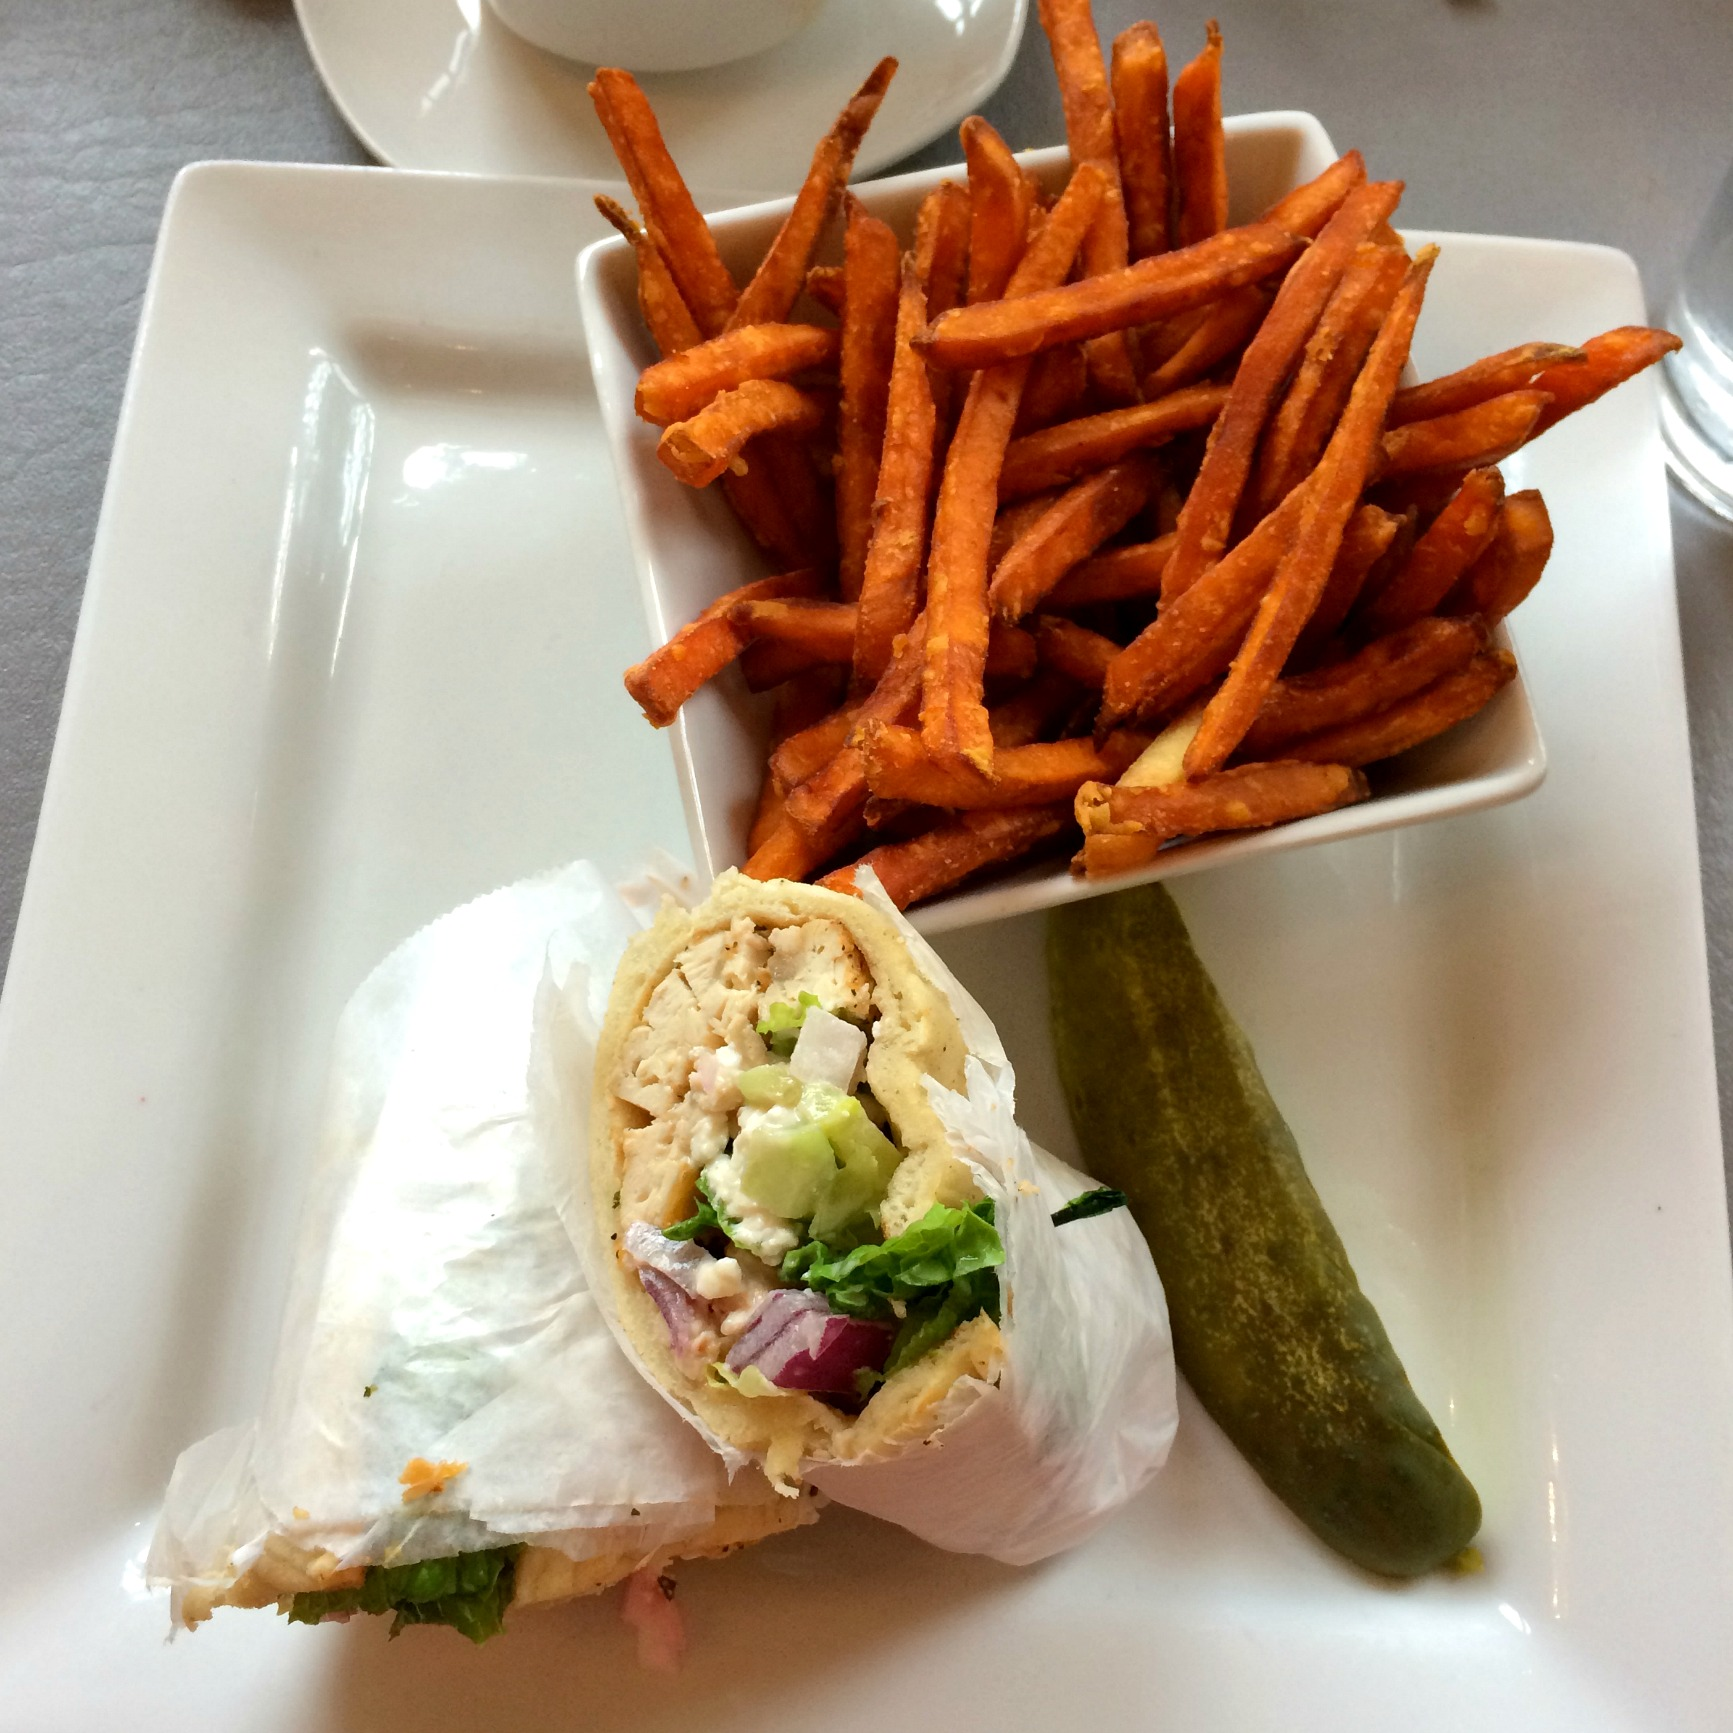 Rochester Brunch House chicken wrap and sweet potato fries